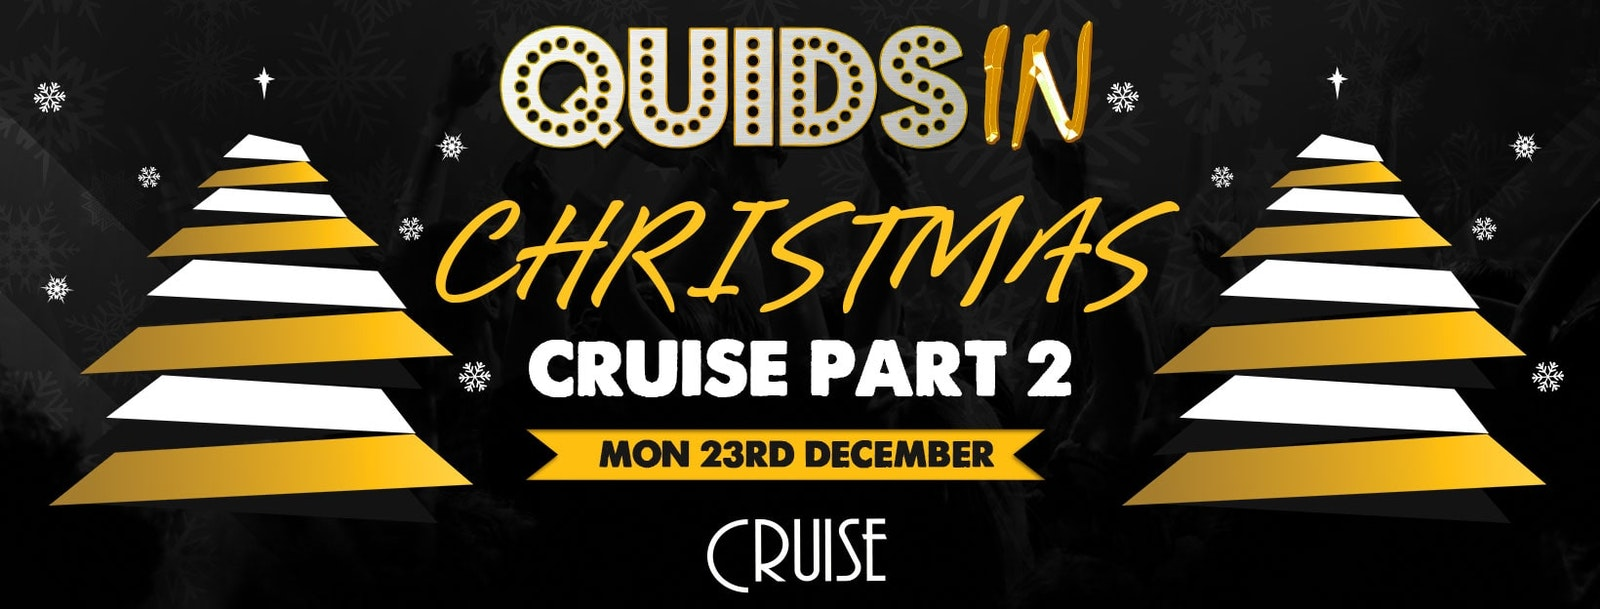 Quids In Chester – Christmas Cruise Part 2